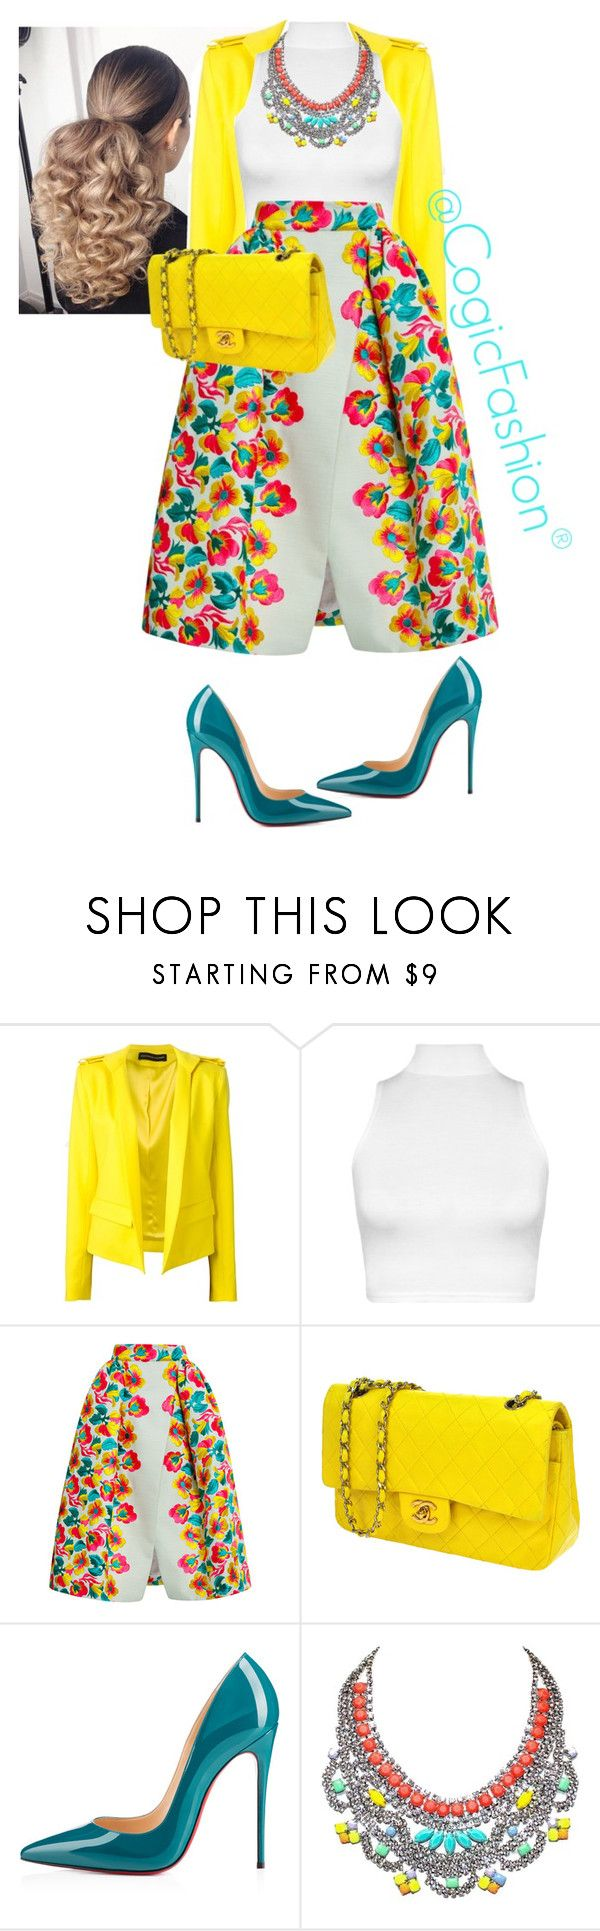 """""""Untitled #464"""" by cogic-fashion ❤ liked on Polyvore featuring Alexandre Vauthier, WearAll, Delpozo, Chanel, Christian Louboutin and Tom Binns"""